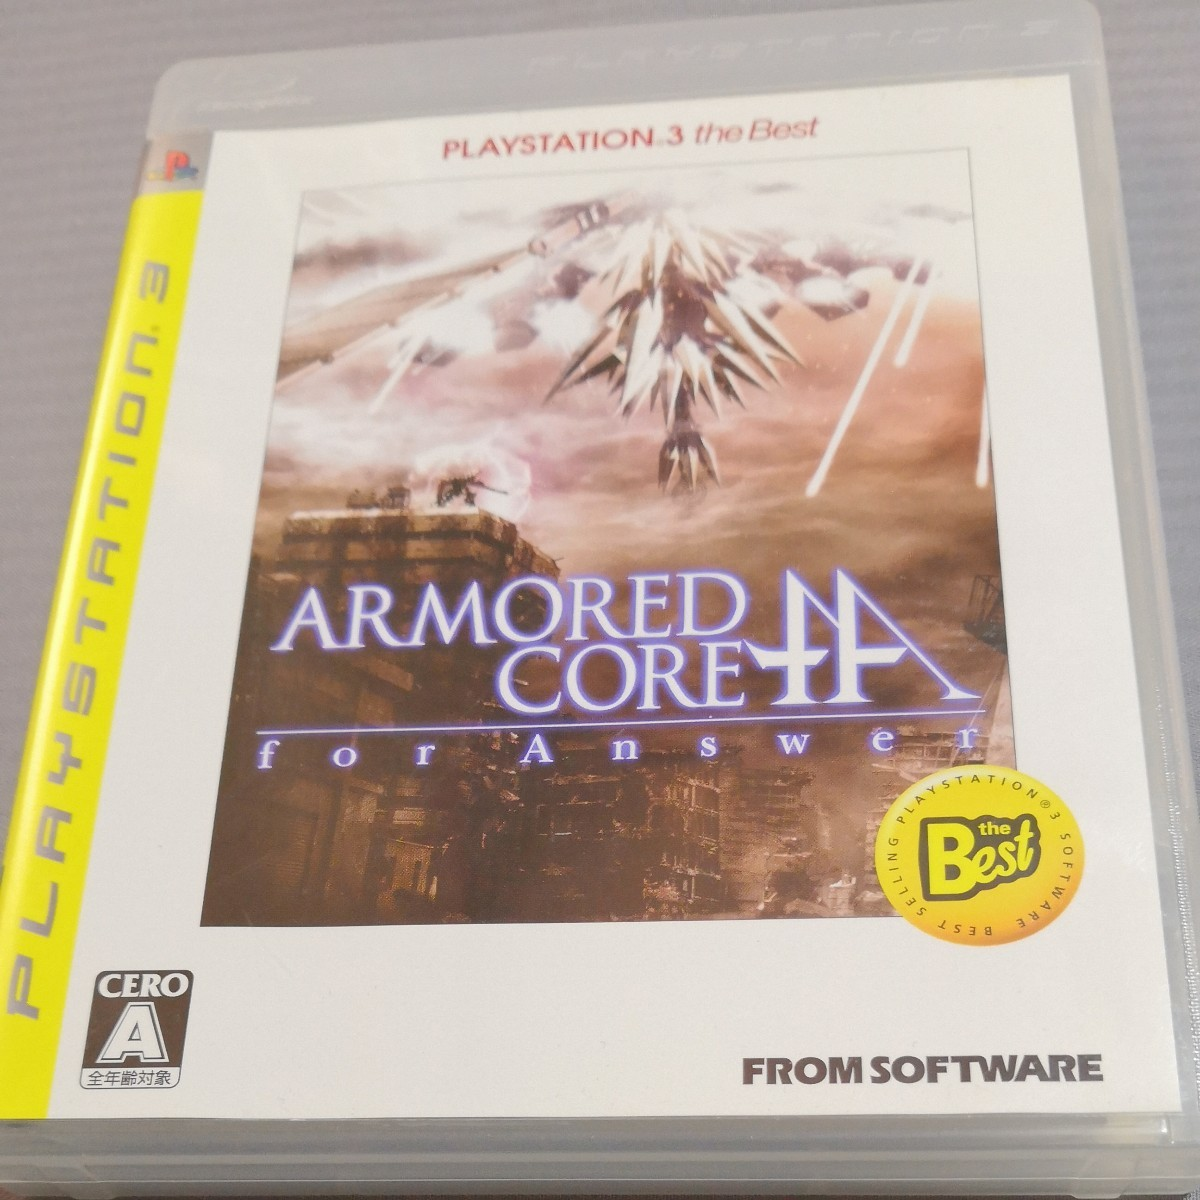 【PS3】 アーマード・コア フォーアンサー [PS3 the Best]